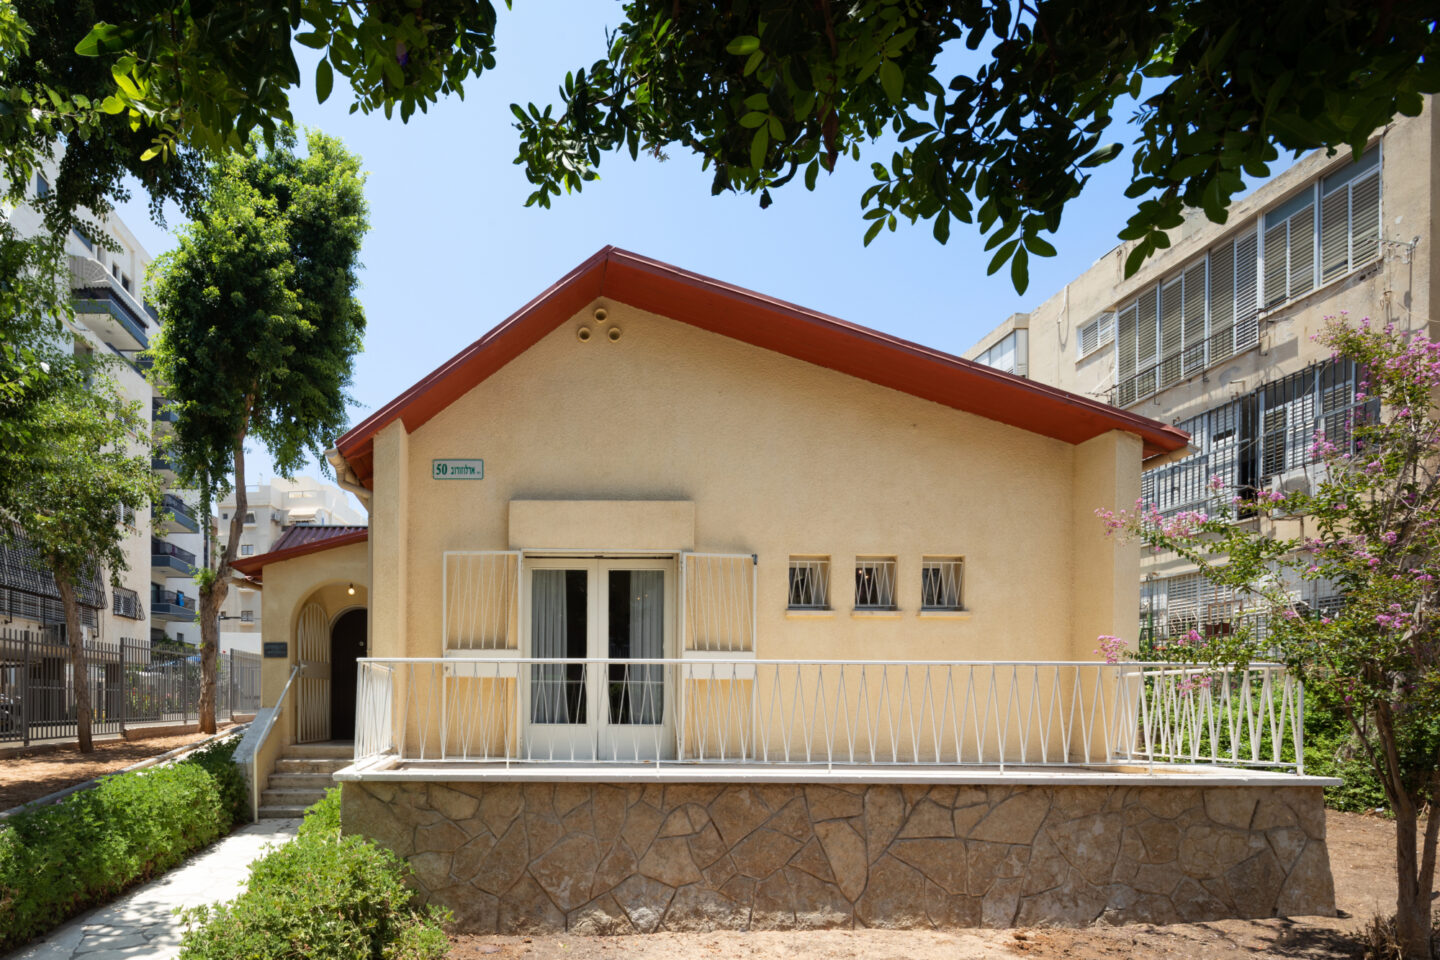 "<p>Exte­ri­or of Sholem Asch's last home at <span class=""numbers"">50</span> Arlozorov Street in Bat Yam, now reopened as a&nbsp;muse­um. Pho­to by Tal&nbsp;Nisim.</p>"